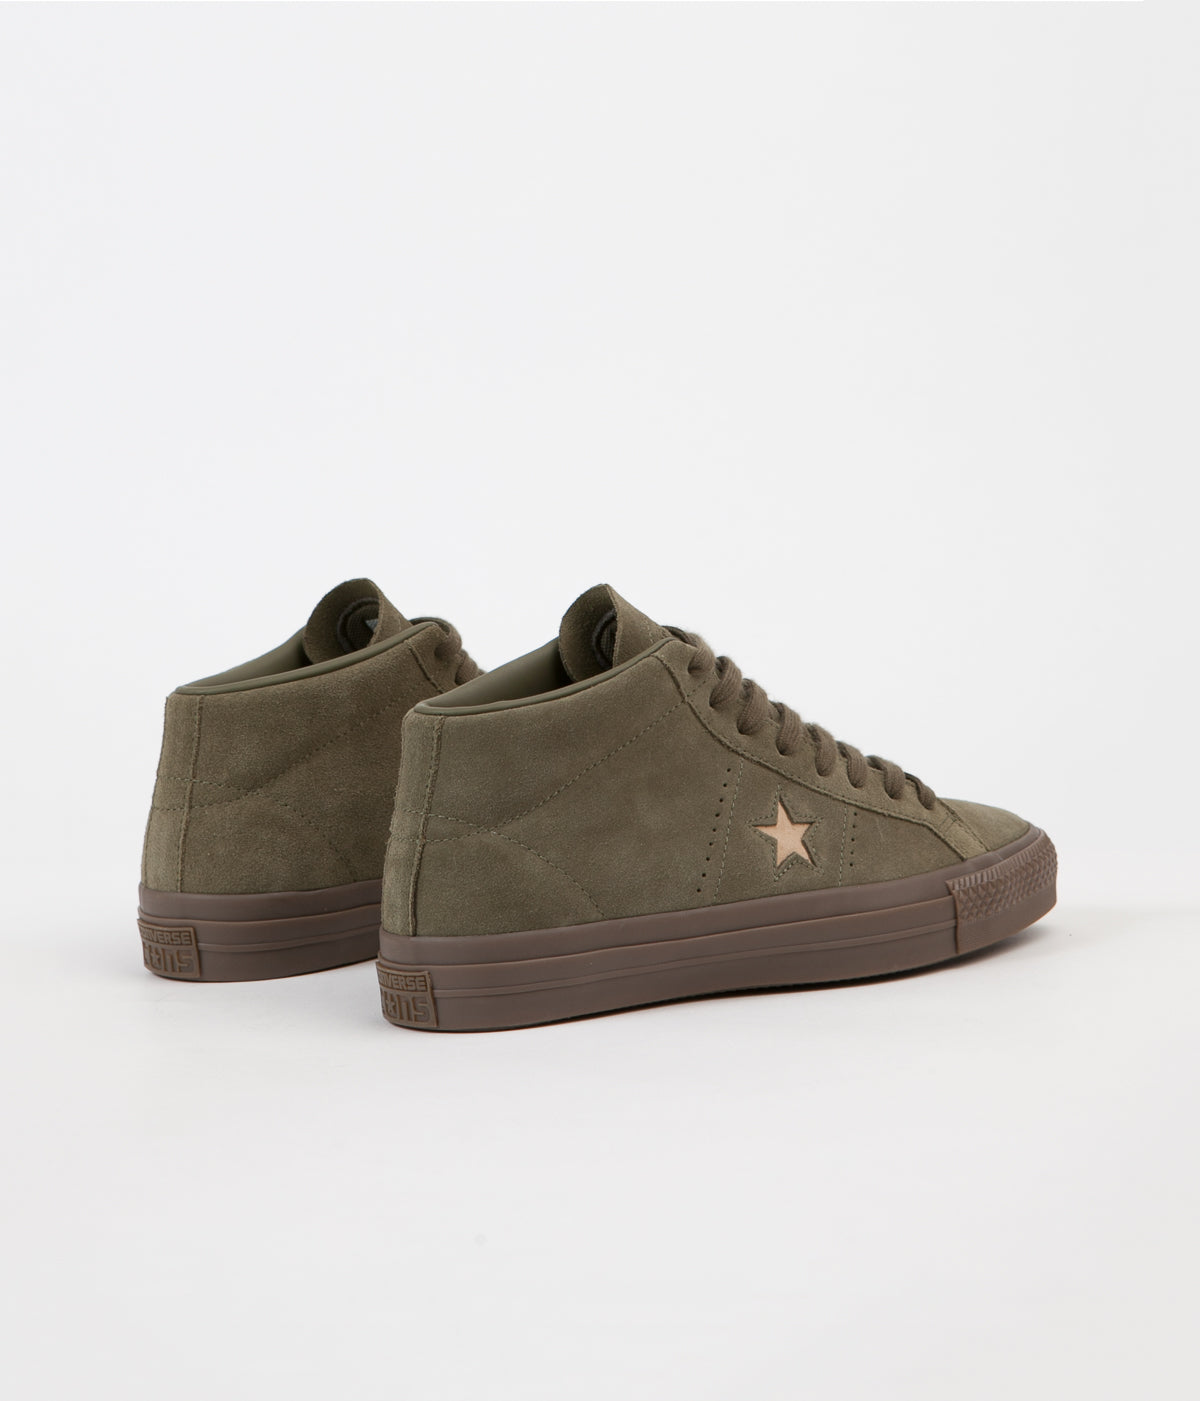 converse light olive